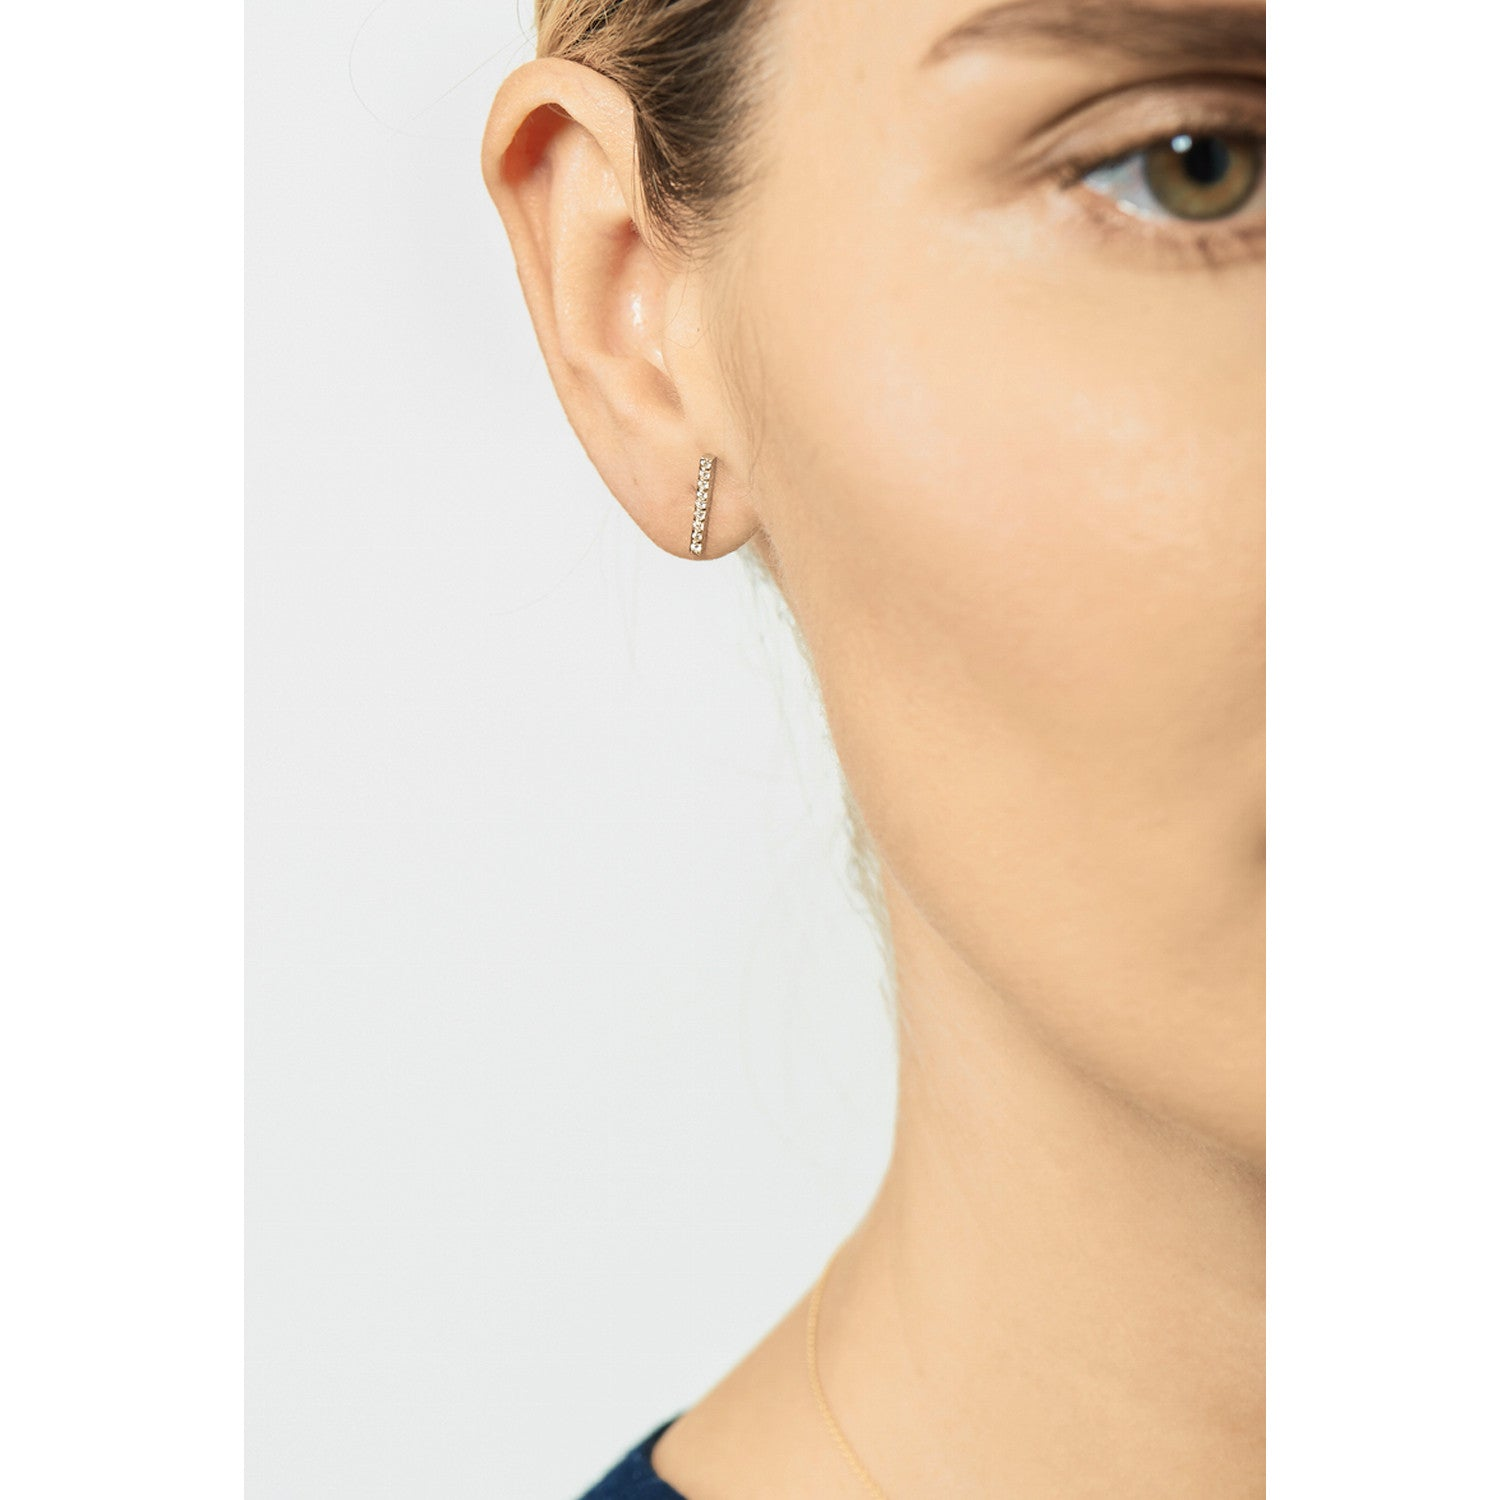 Selin Kent 14K Charlotte Pavé Studs with White Diamonds - On Model